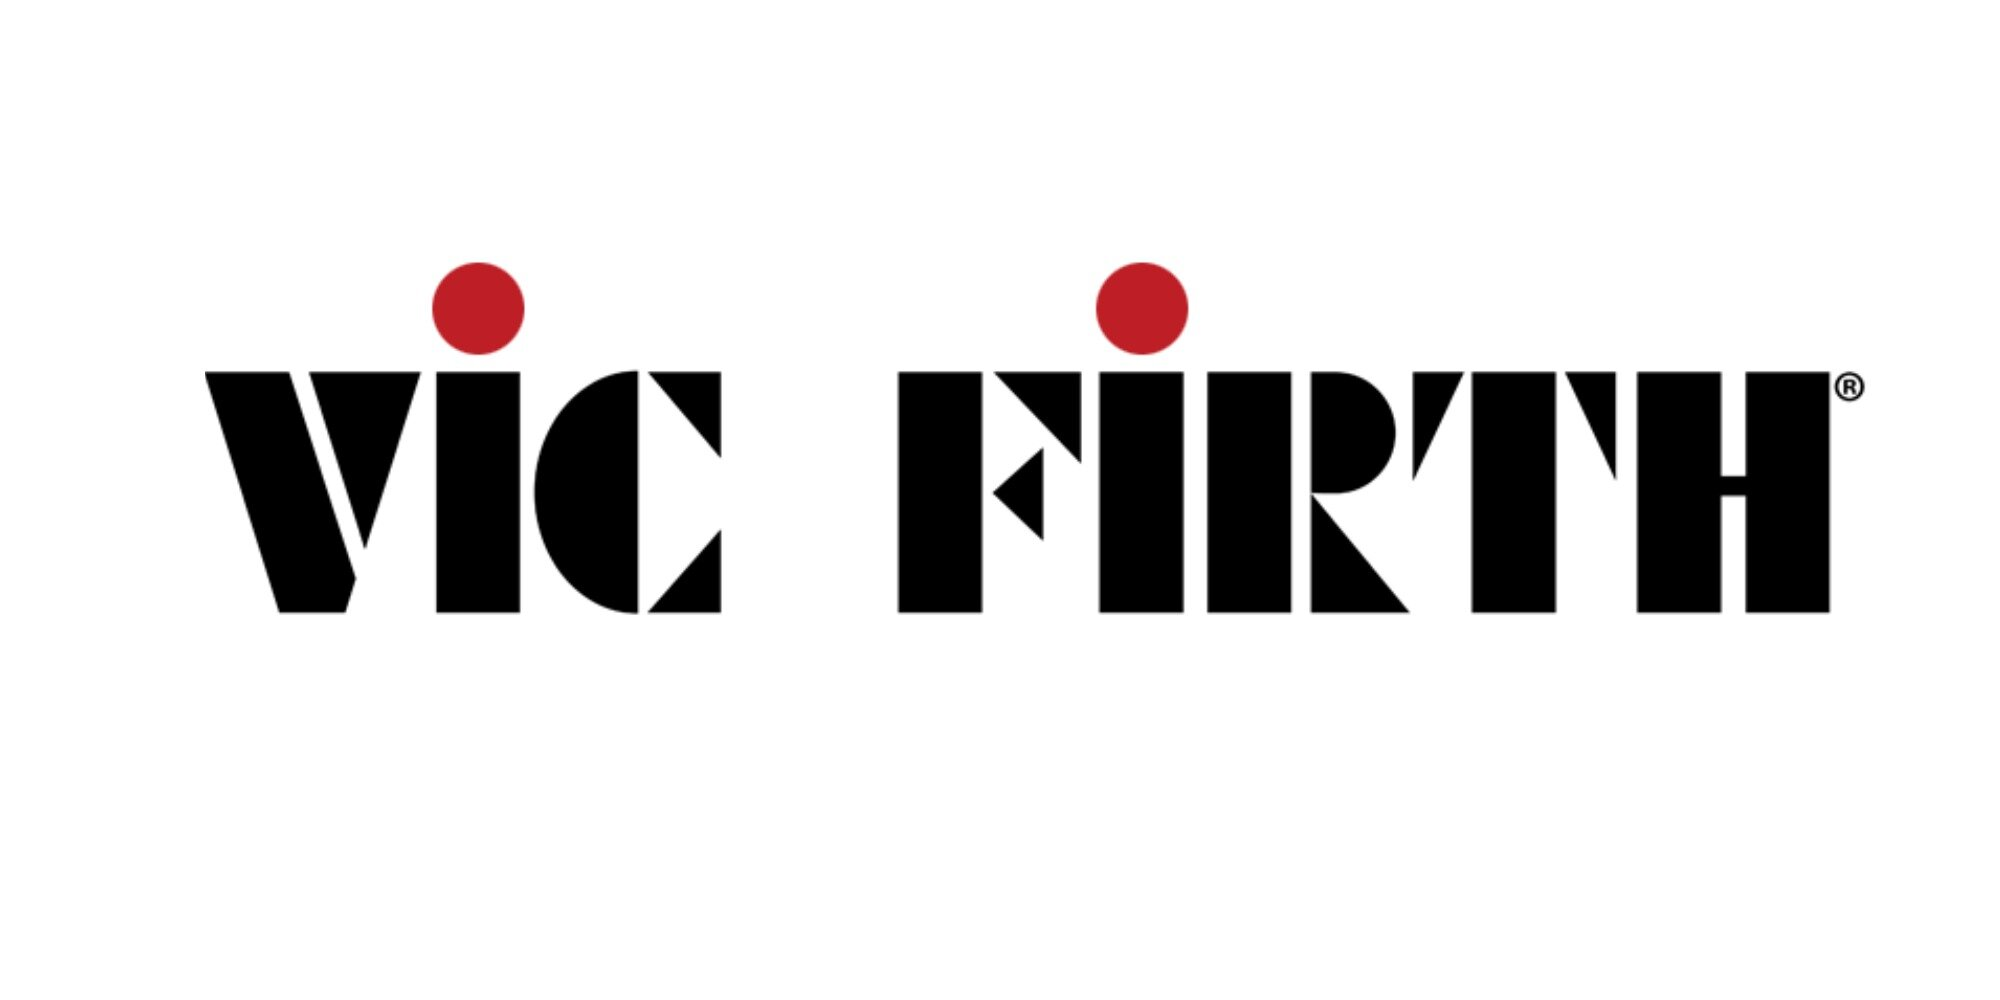 Vic-Firth-logo.jpg